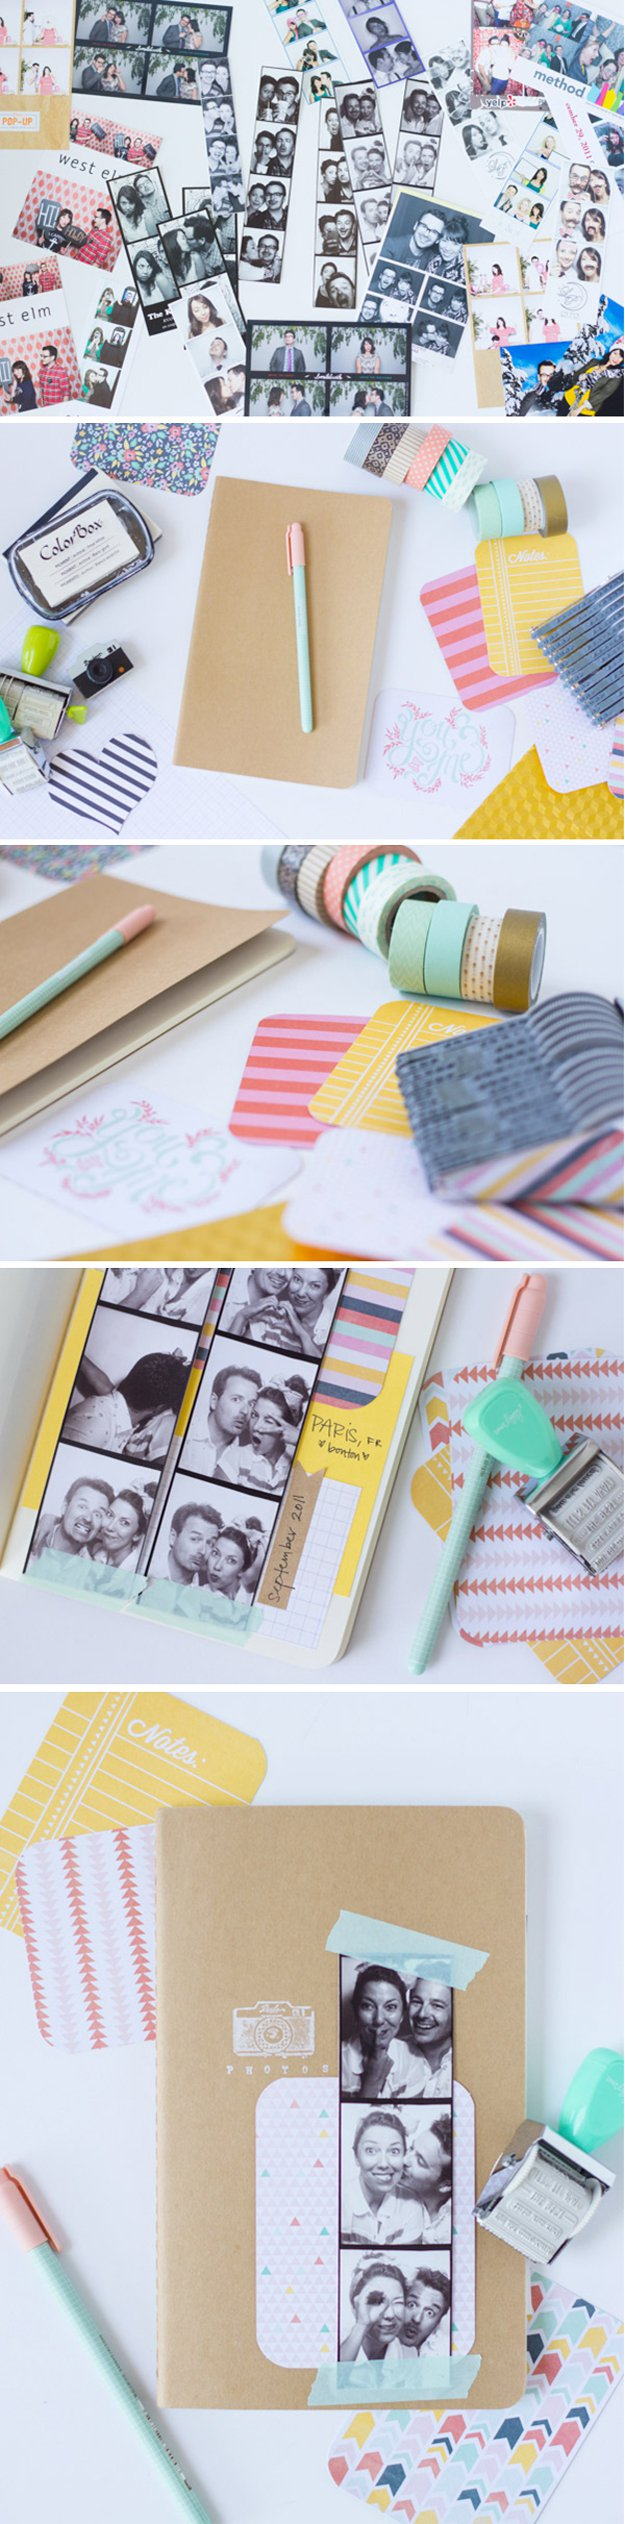 Washi Tape Crafts - DIY Photobooth Strip Scrapbook - Wall Art, Frames, Cards, Pencils, Room Decor and DIY Gifts, Back To School Supplies - Creative, Fun Craft Ideas for Teens, Tweens and Teenagers - Step by Step Tutorials and Instructions #washitape #crafts #cheapcrafts #teencrafts